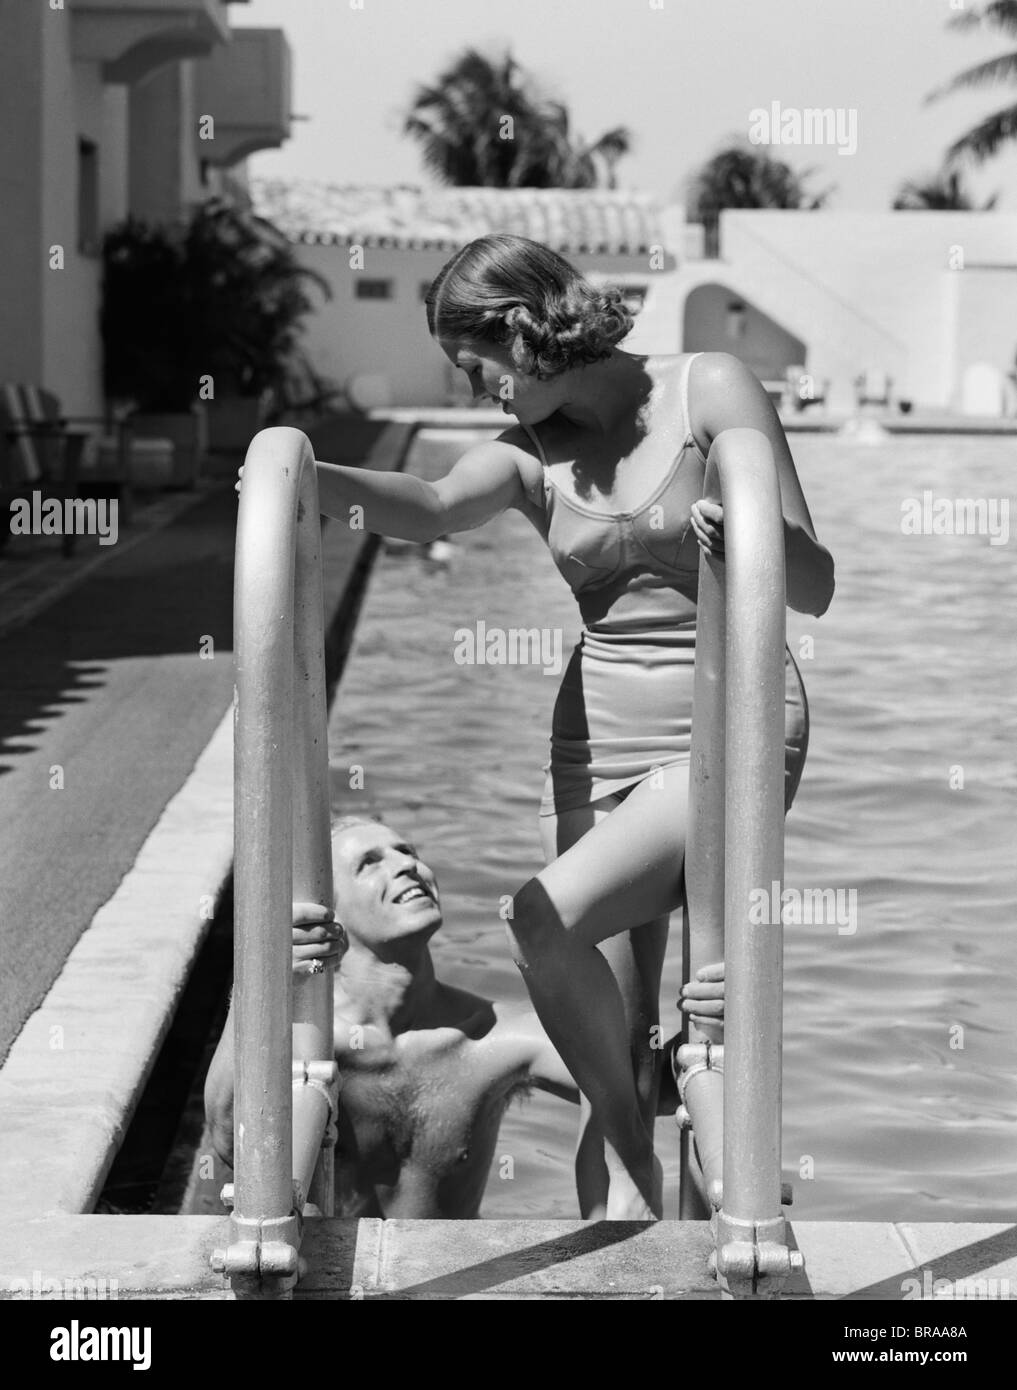 1930s WOMAN WEARING ONE PIECE BATHING SUIT CLIMBING OUT OF SWIMMING POOL LOOKING DOWN AT MAN SMILING - Stock Image